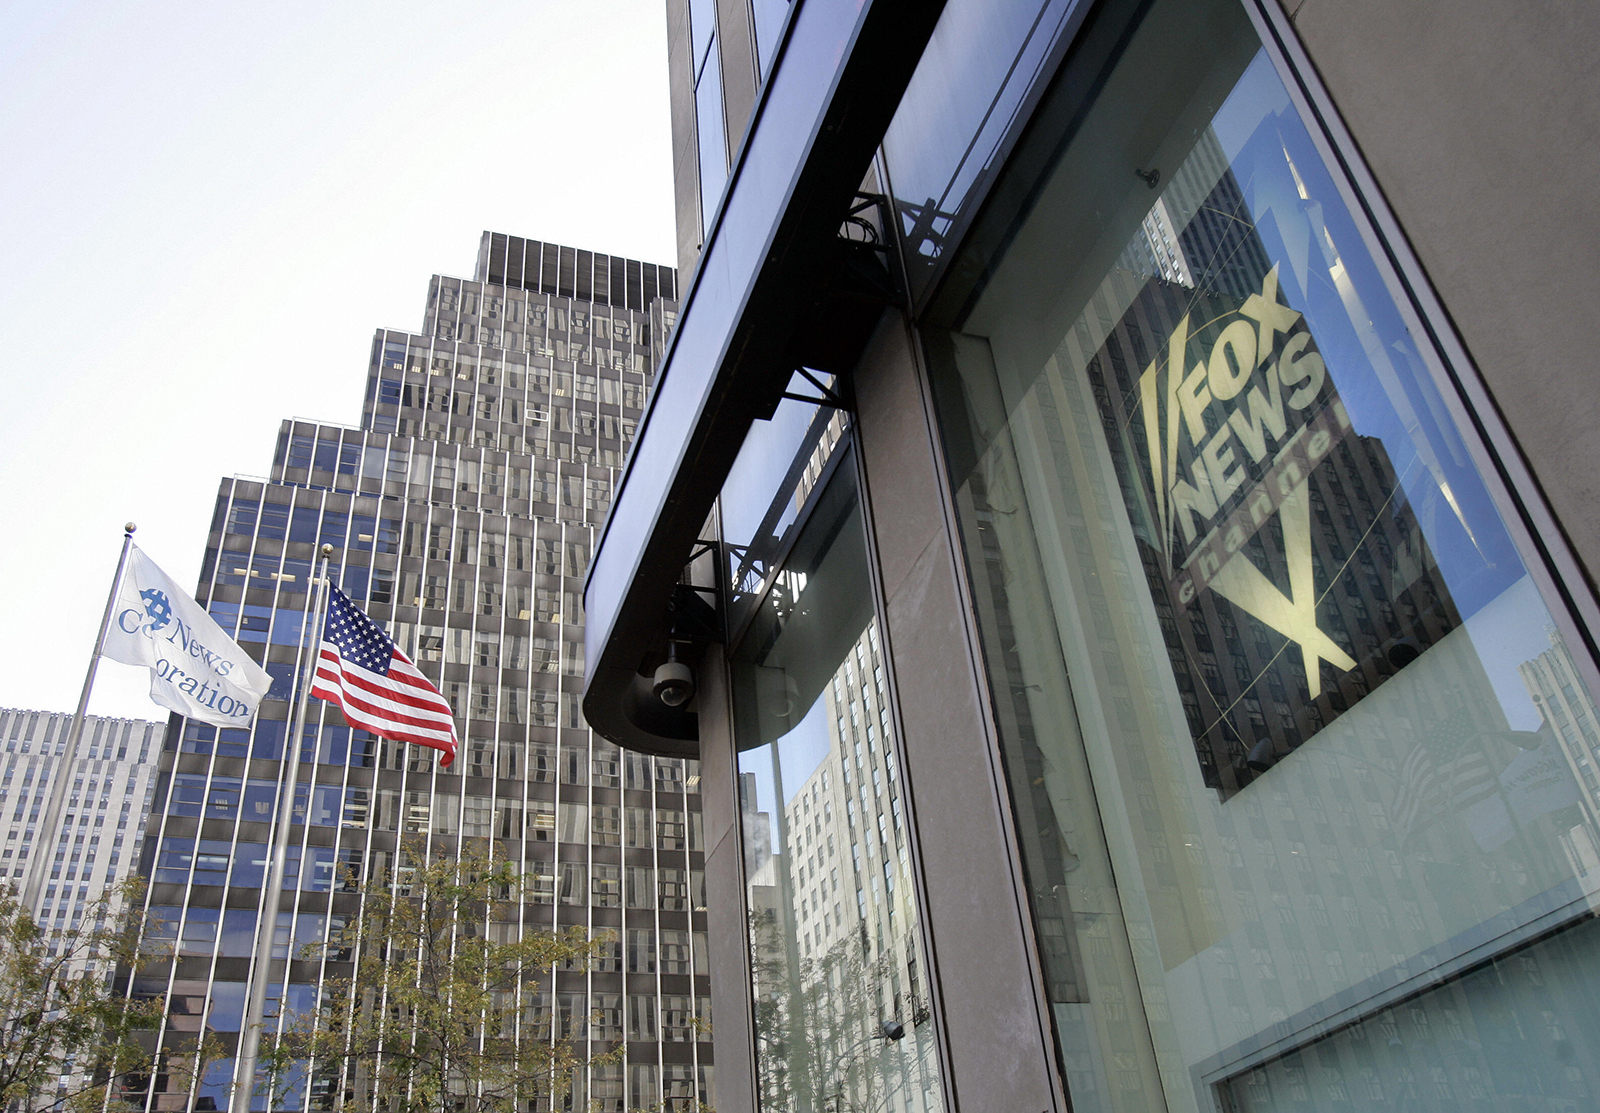 Fox News management says there are a 'few positive COVID-19 cases' at the company